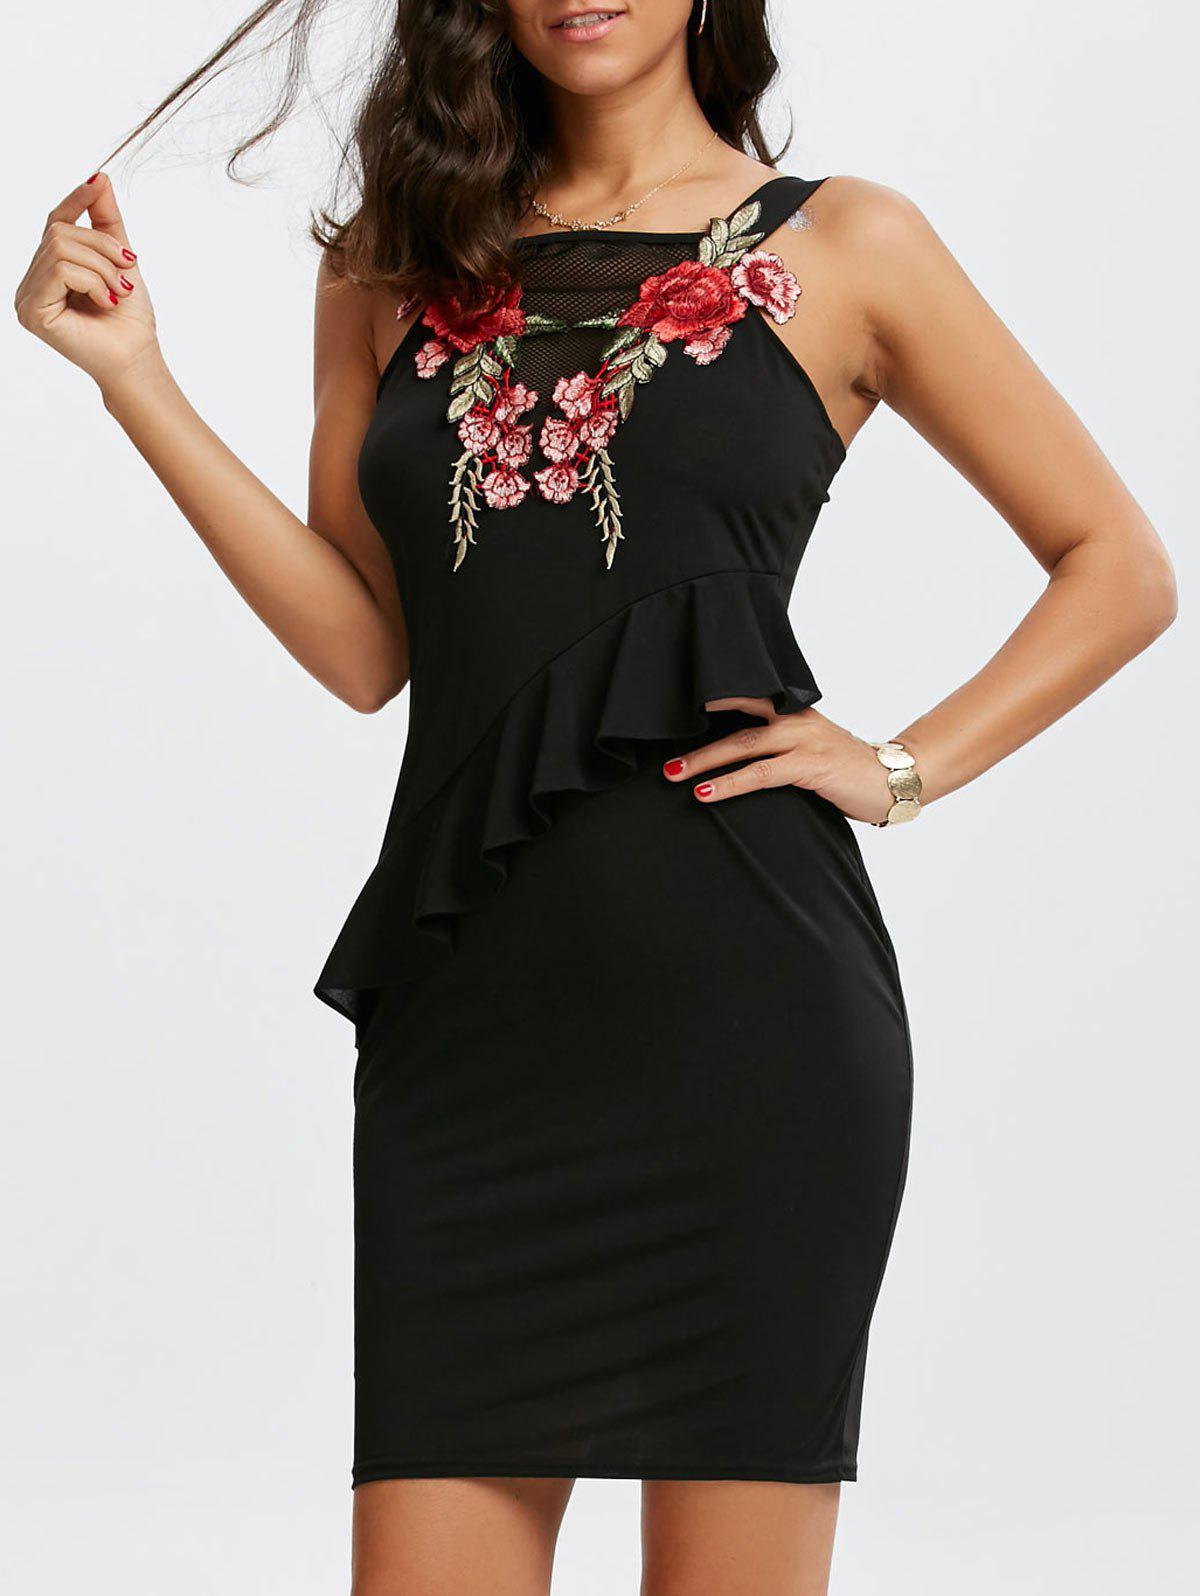 Floral Embroidered Mesh Insert Mini Peplum Dress reima брюки procyon для девочки reima